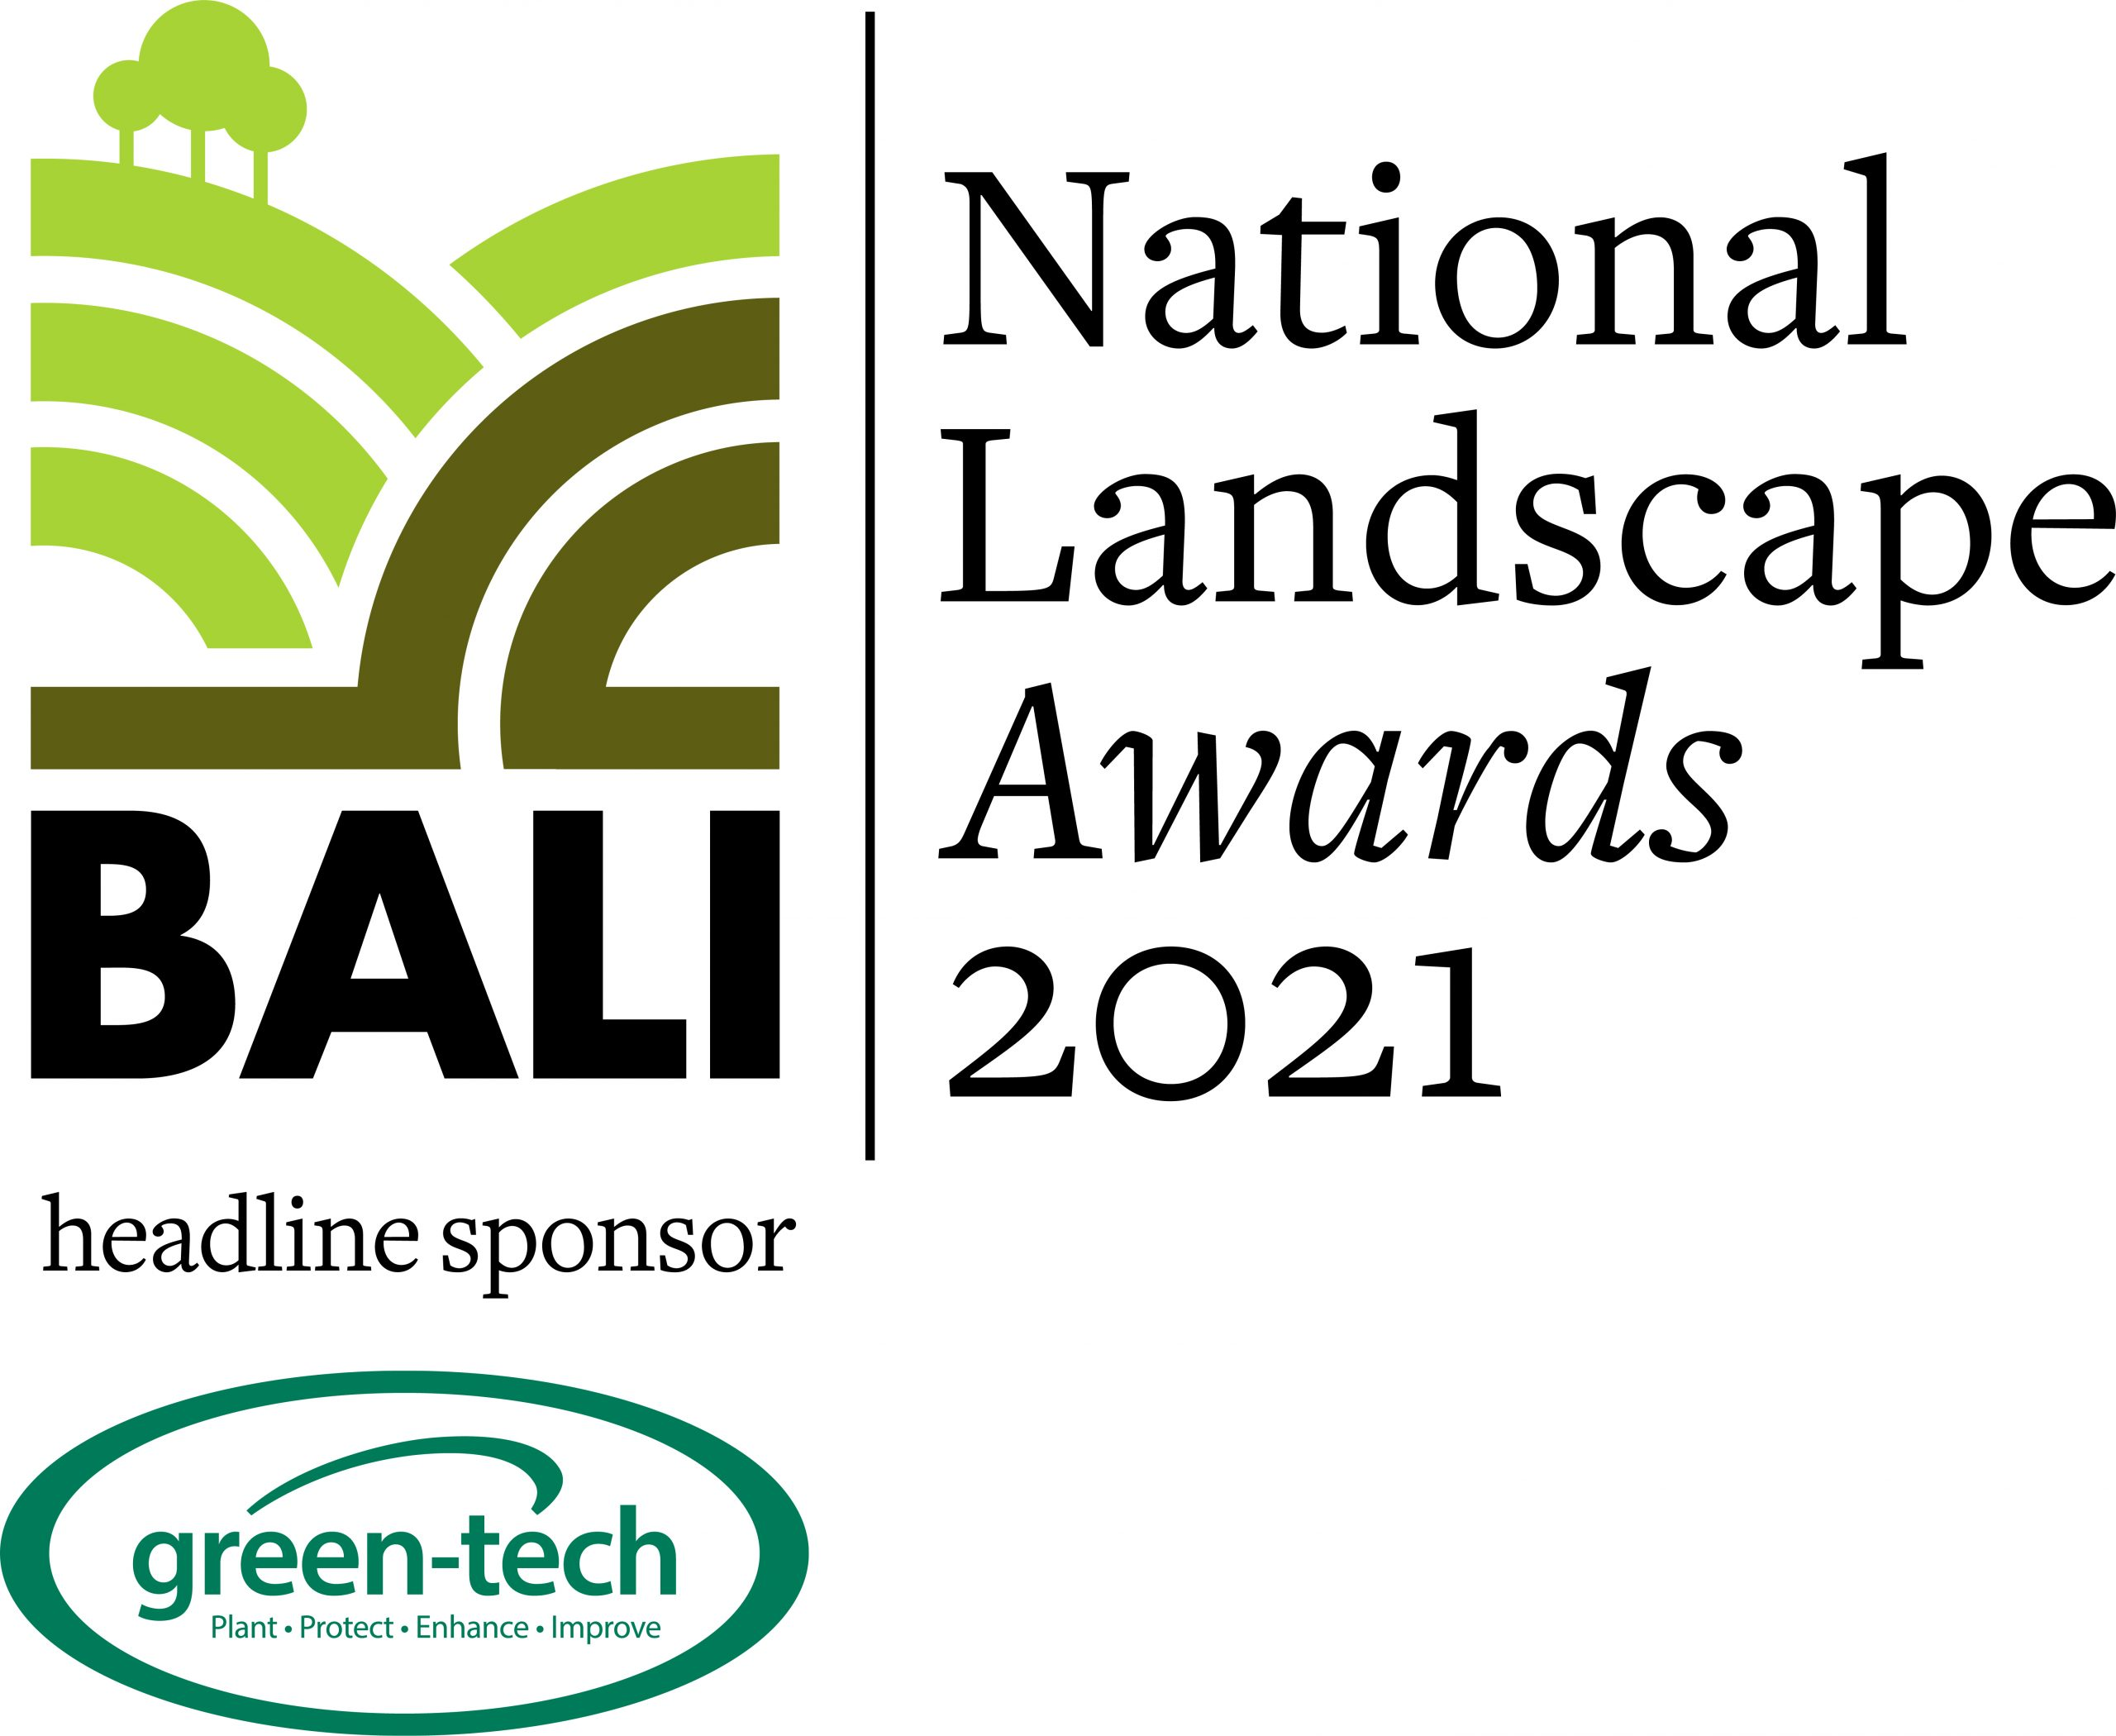 Entries open for the 45th BALI National Landscape Awards 2021